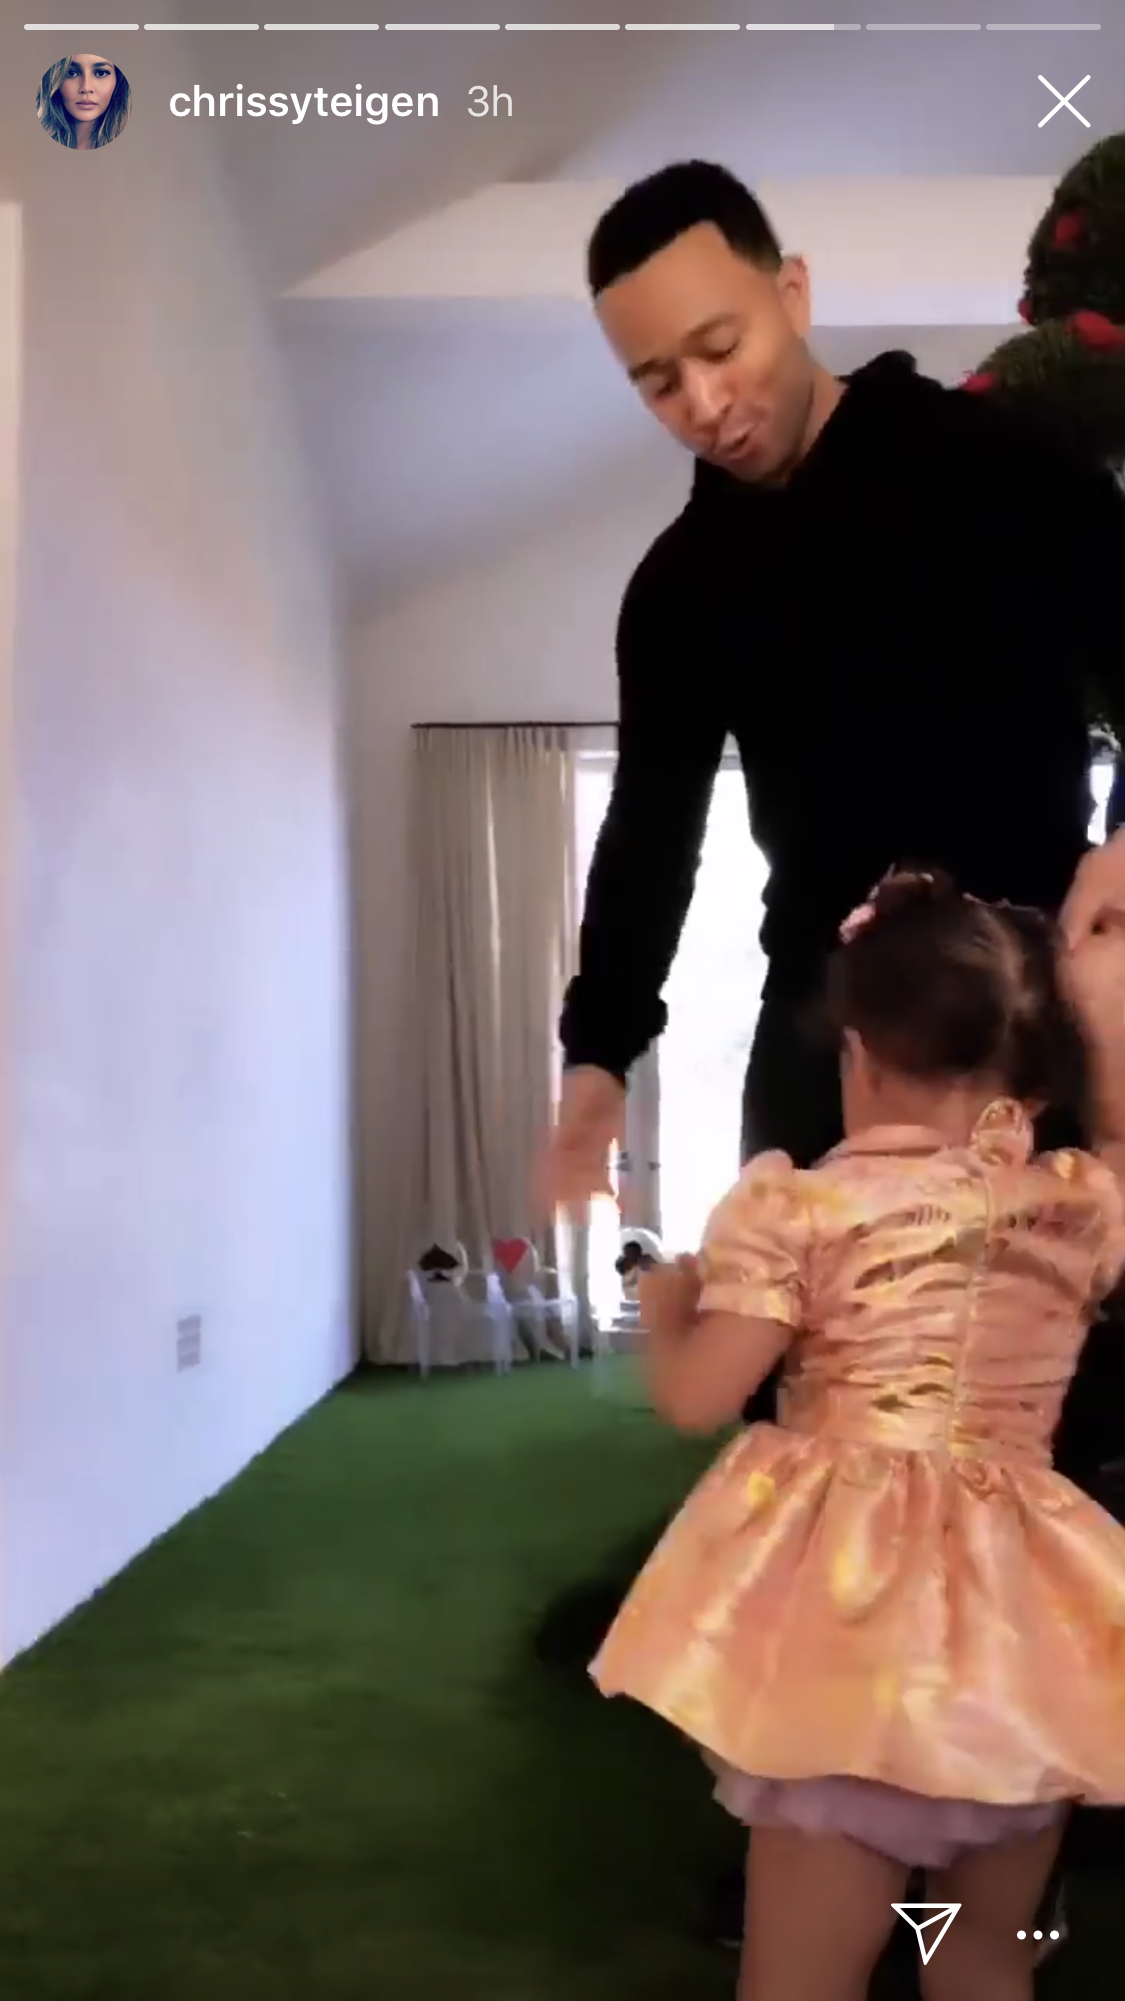 John legend, Chrissy teigen, Kim Kardashian, chicago west, birthday party, alice in wonderland - Luna was later spotted being twirled around by her doting dad.